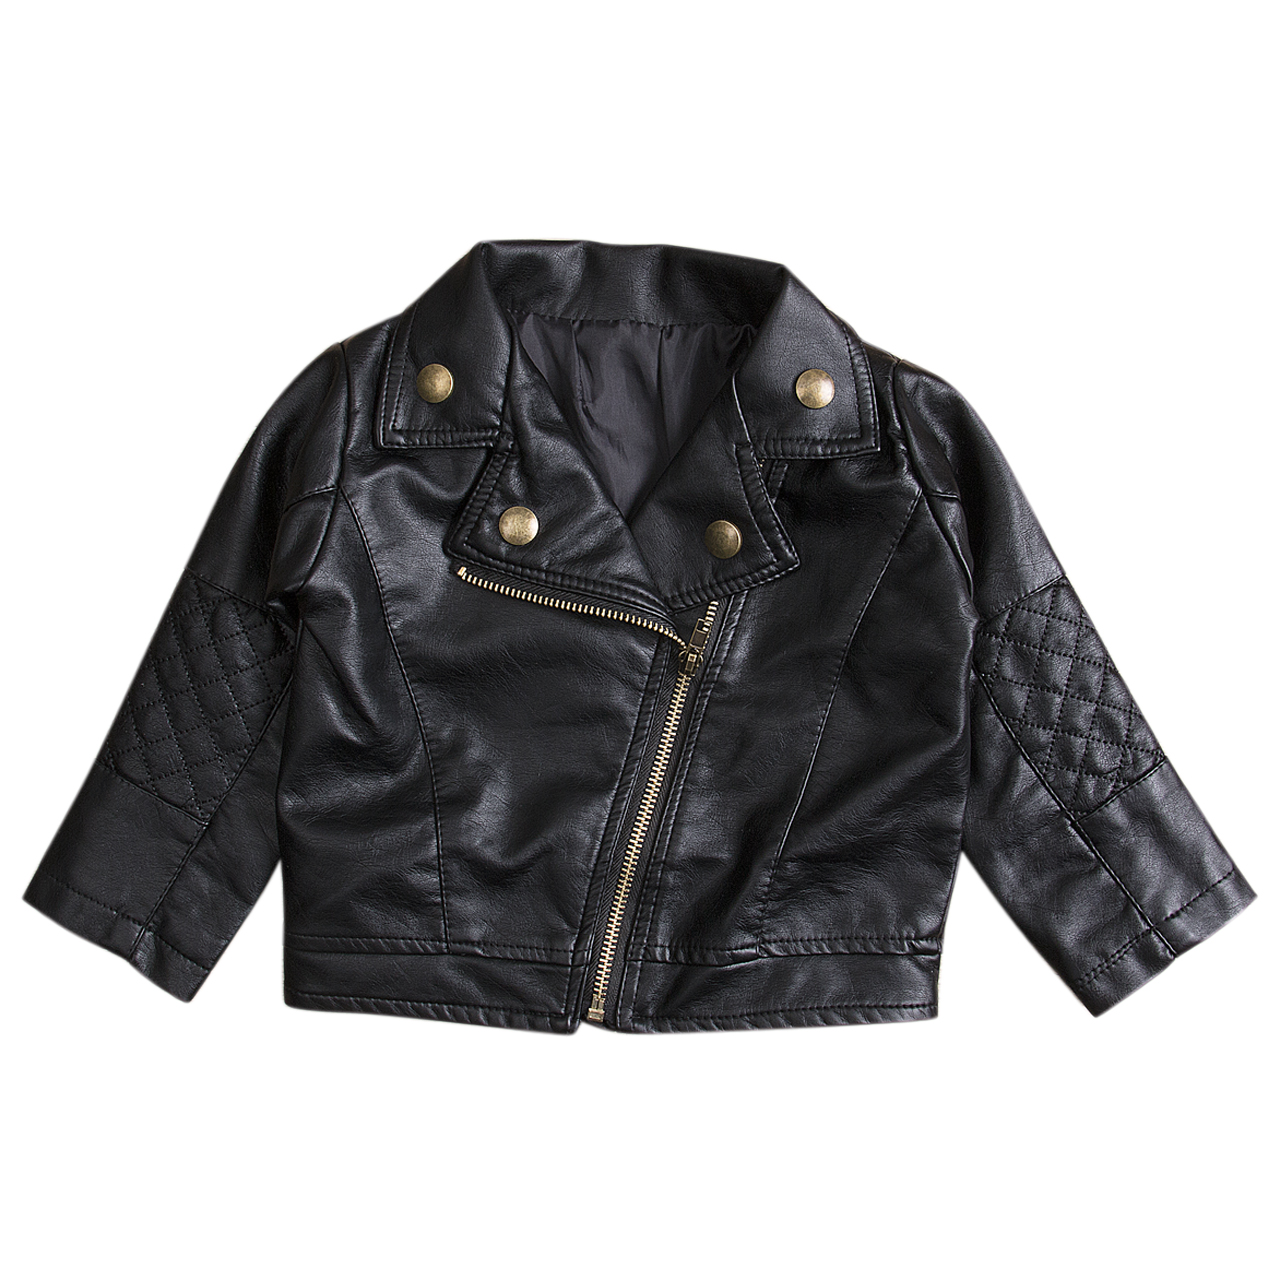 Capable 2017 New Kids Girl Fashion Motorcycle Pu Leather Jacket Biker Coat Overcoat Black Fast Color Outerwear & Coats